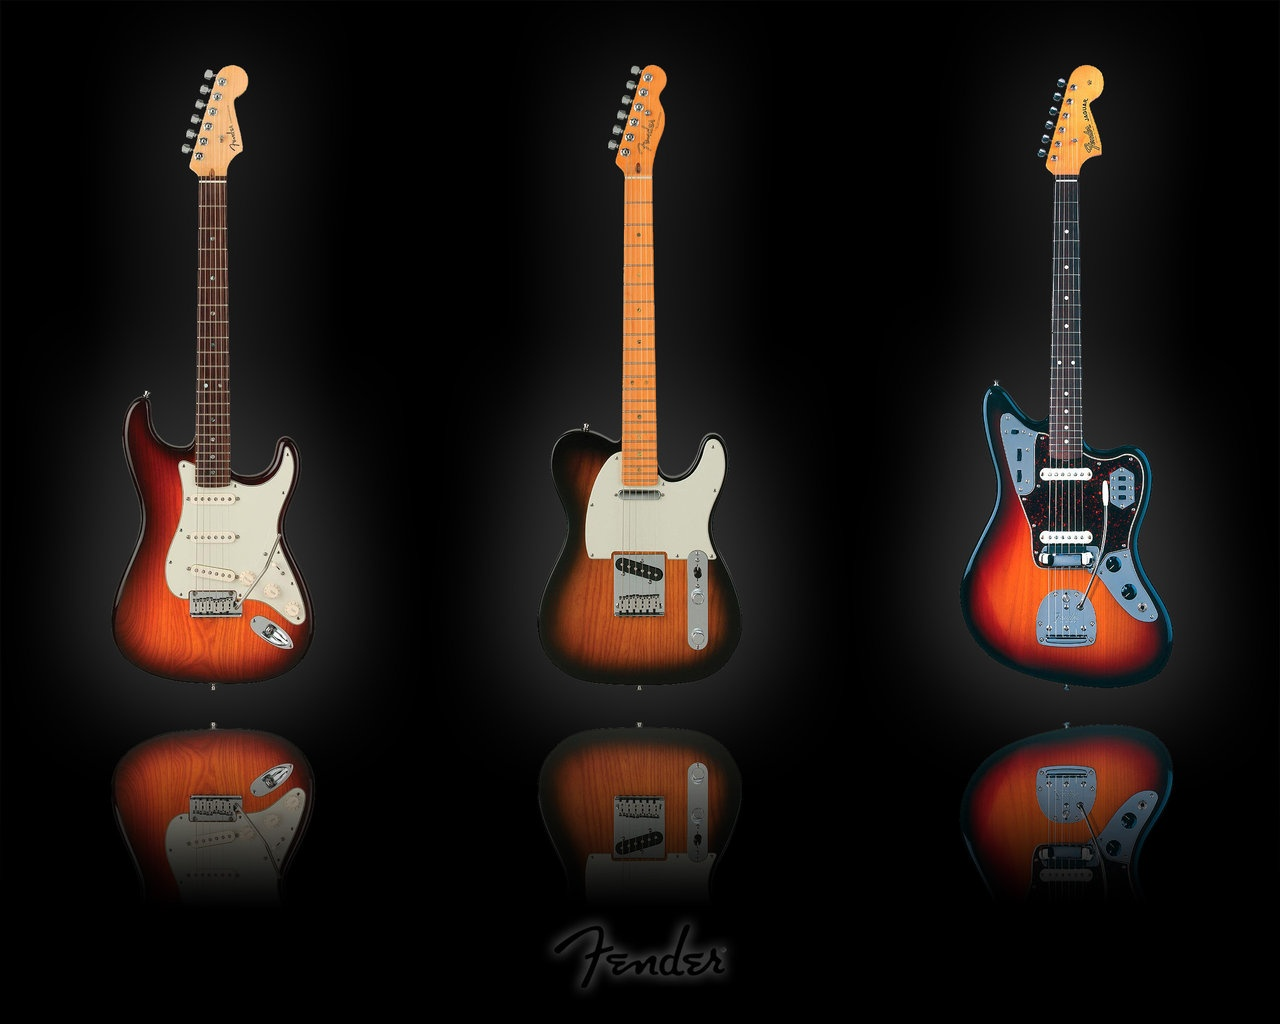 Guitar Fender Wallpaper 18202 Hd Wallpapers in Music   Imagescicom 1280x1024